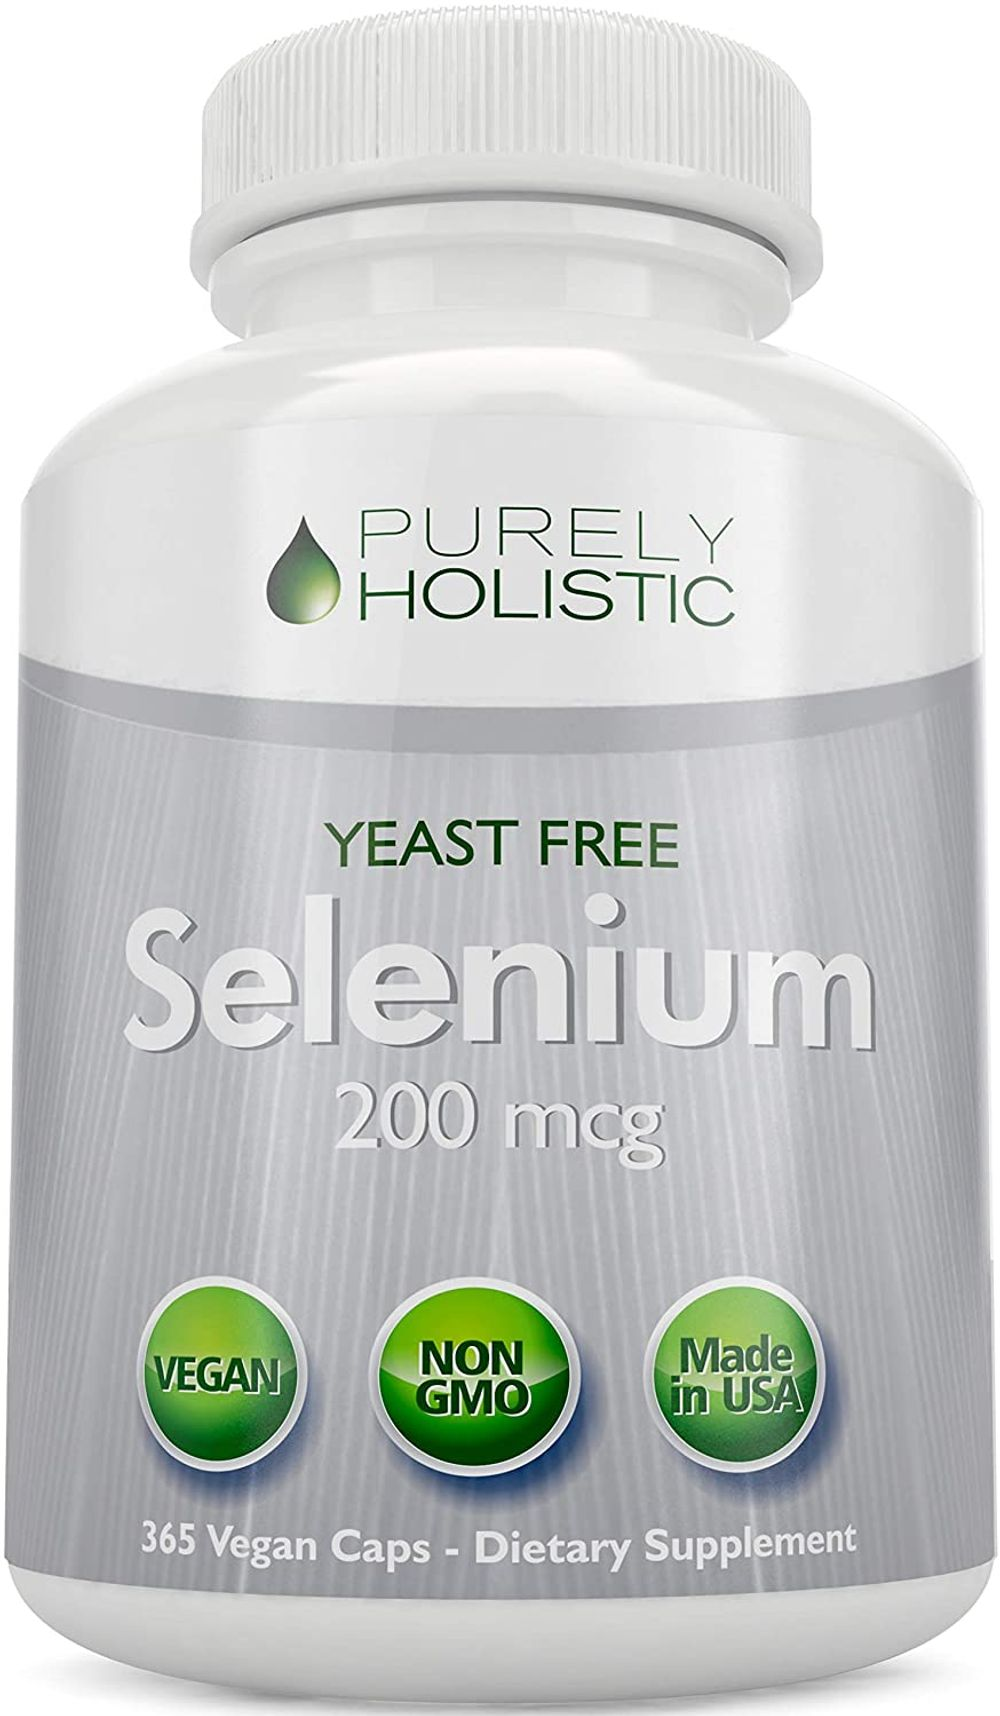 Selenium 200mcg - 365 Vegan Capsules not Tablets - Pure & Yeast Free L-Selenomethionine for Improved Absorption - Thyroid, Heart, and Immune System Support - Antioxidant Trace Mineral - Made in USA